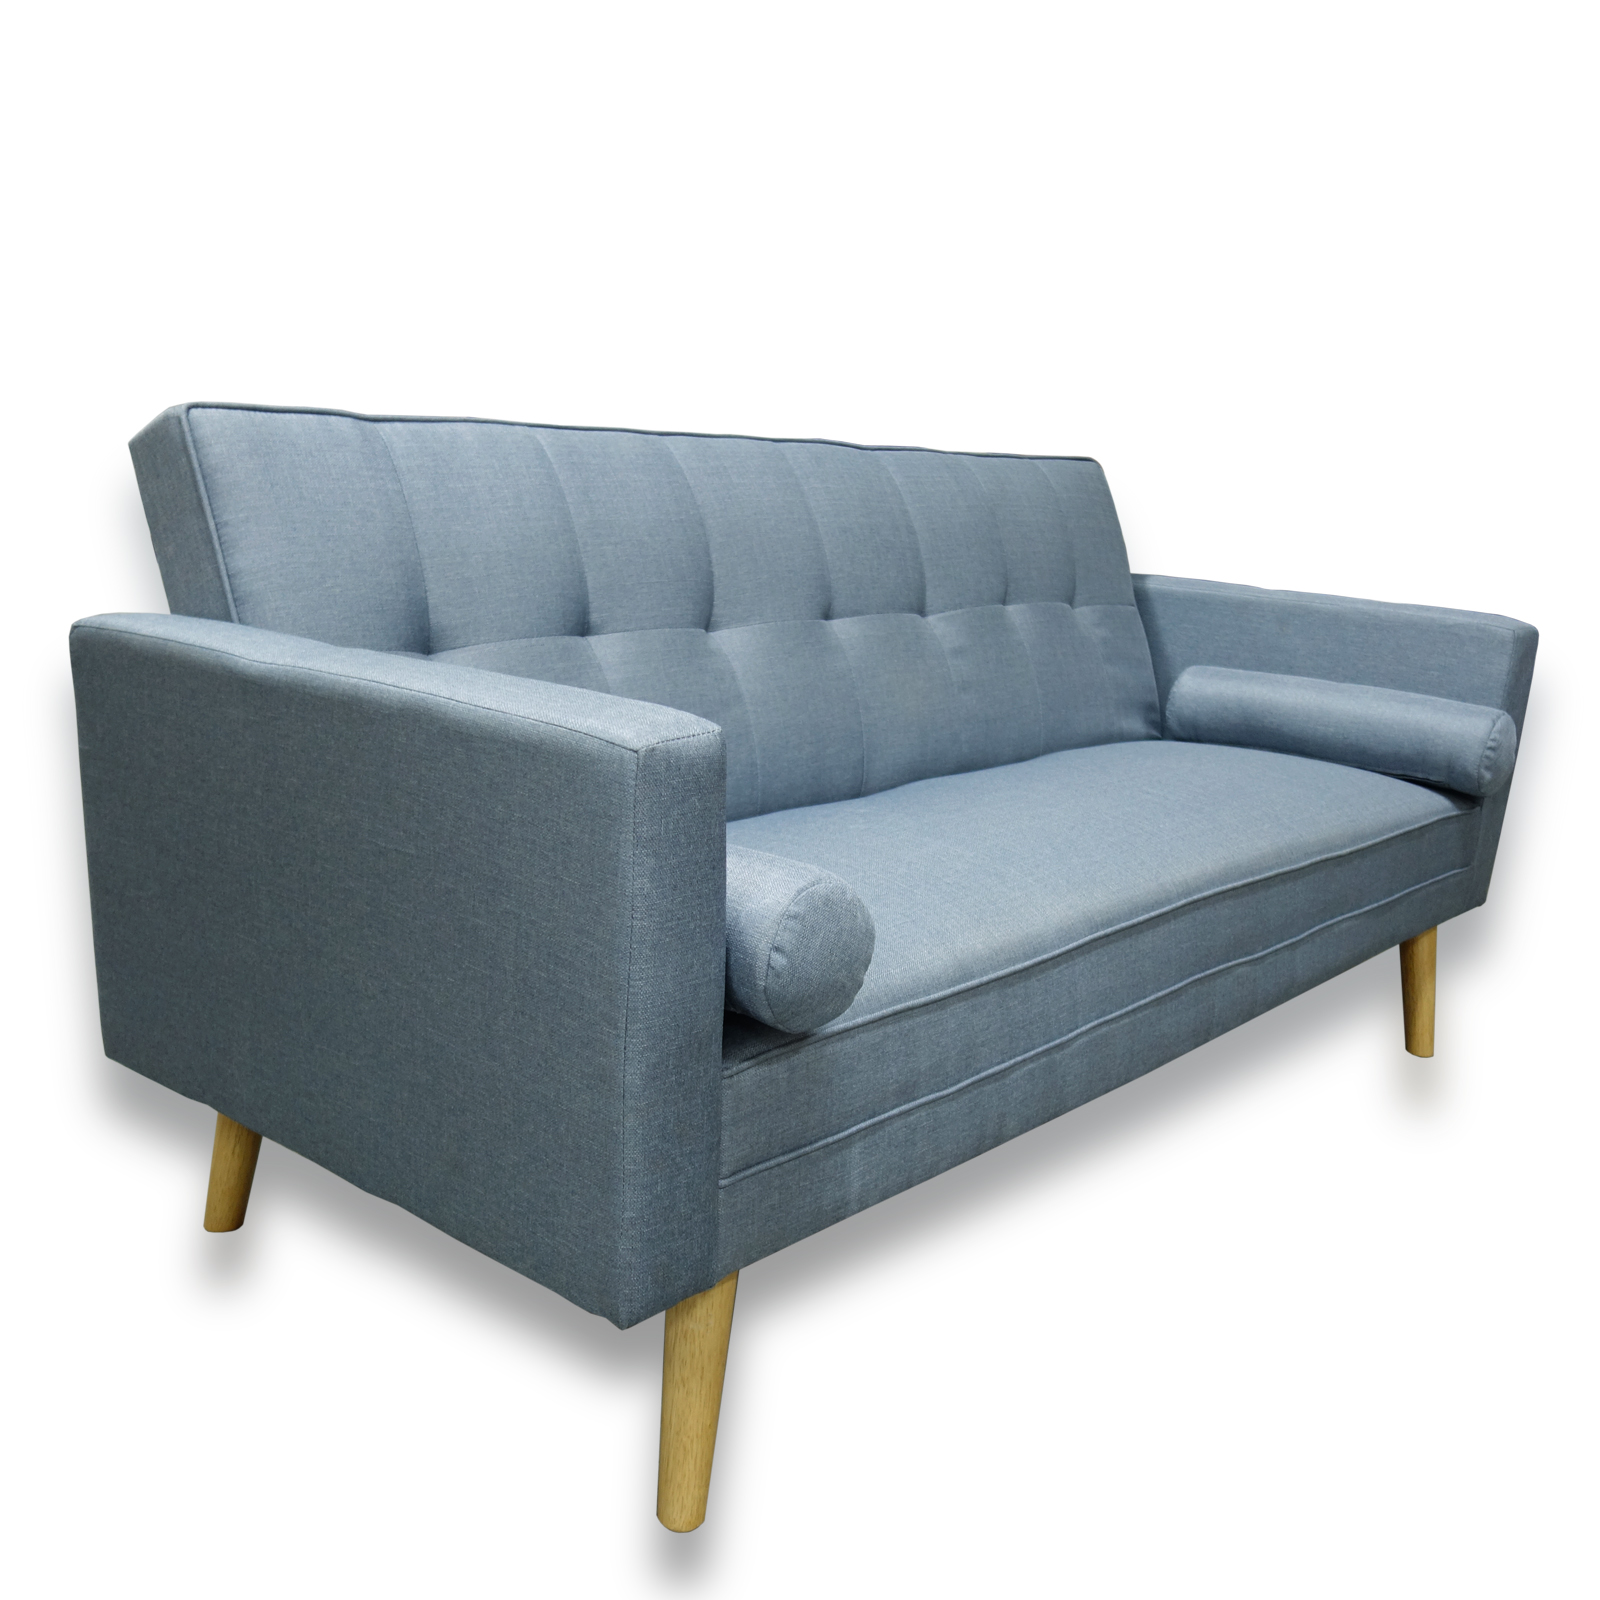 good quality sofa brands australia modern living room corner sofas amy brand new blue or grey fabric click clack bed